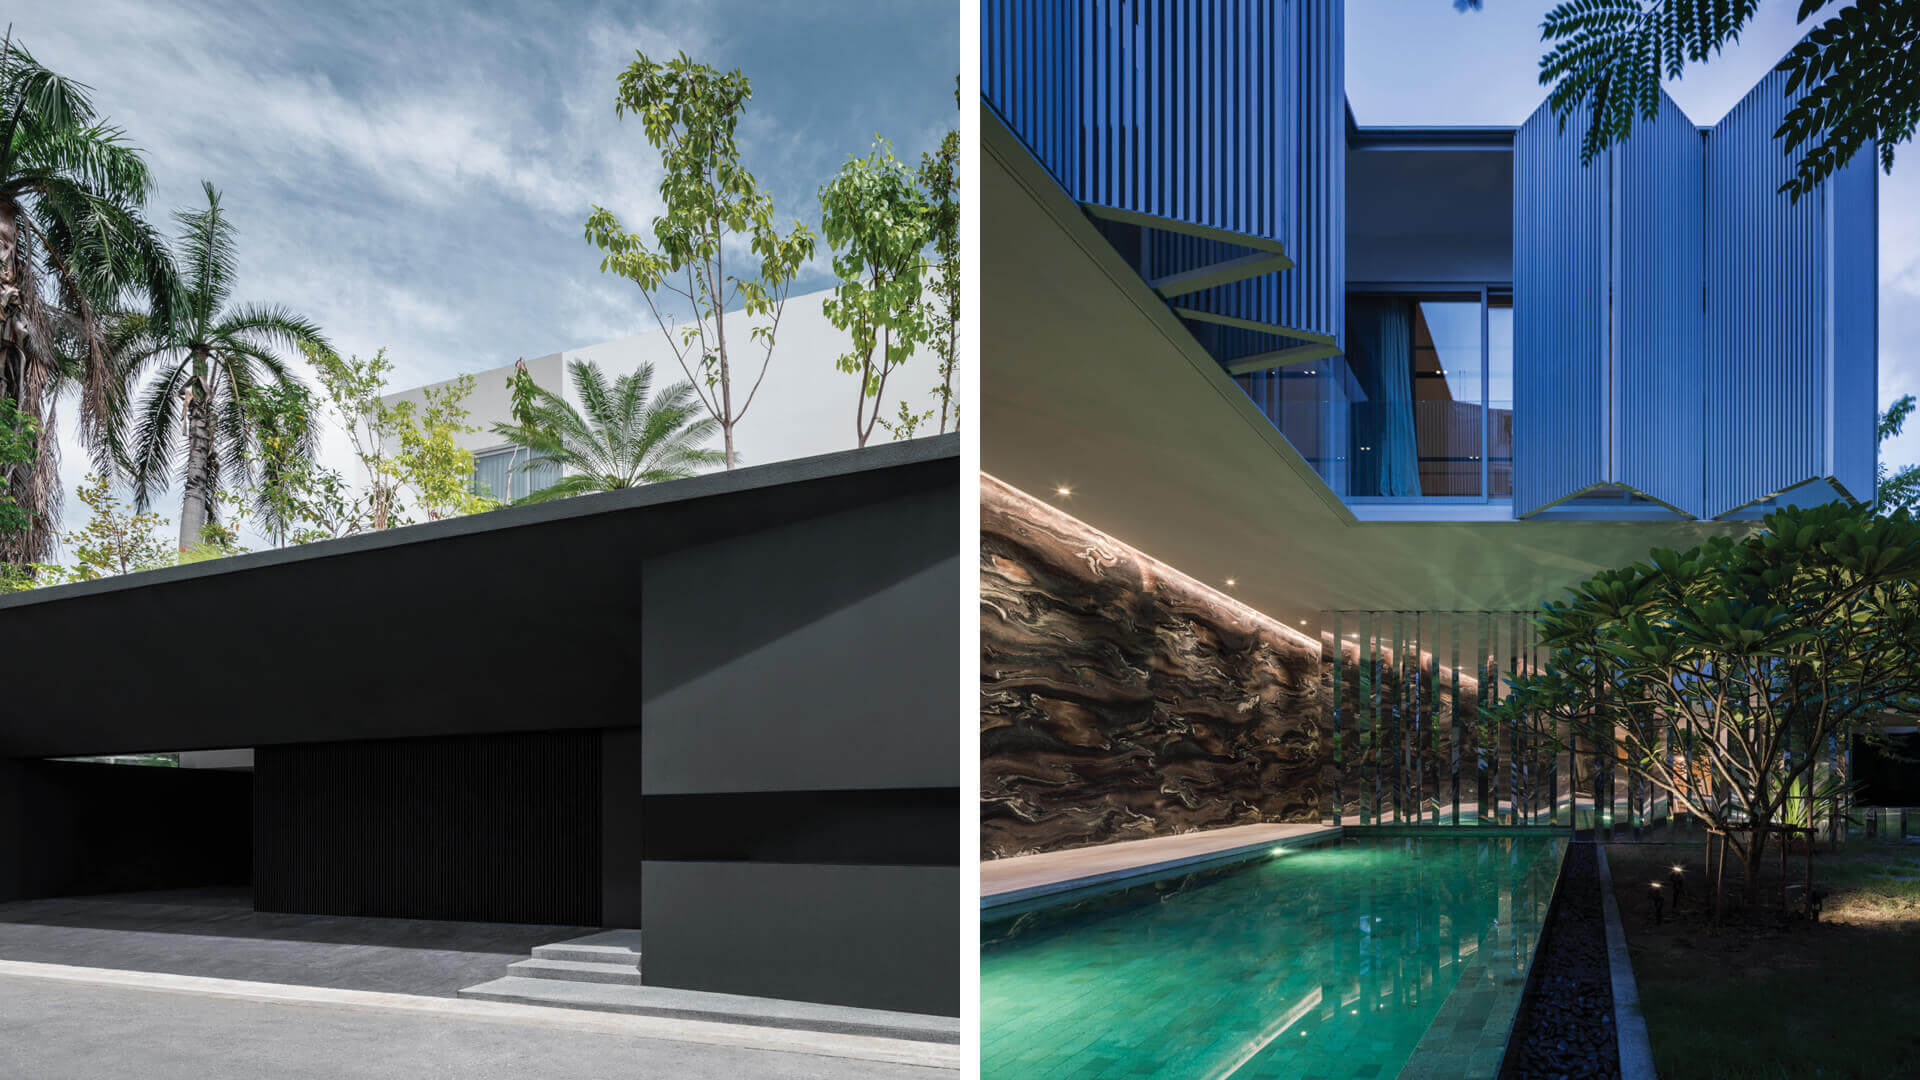 Ayutt and Associates design's Interlude House in Thailand revels in marble opulence